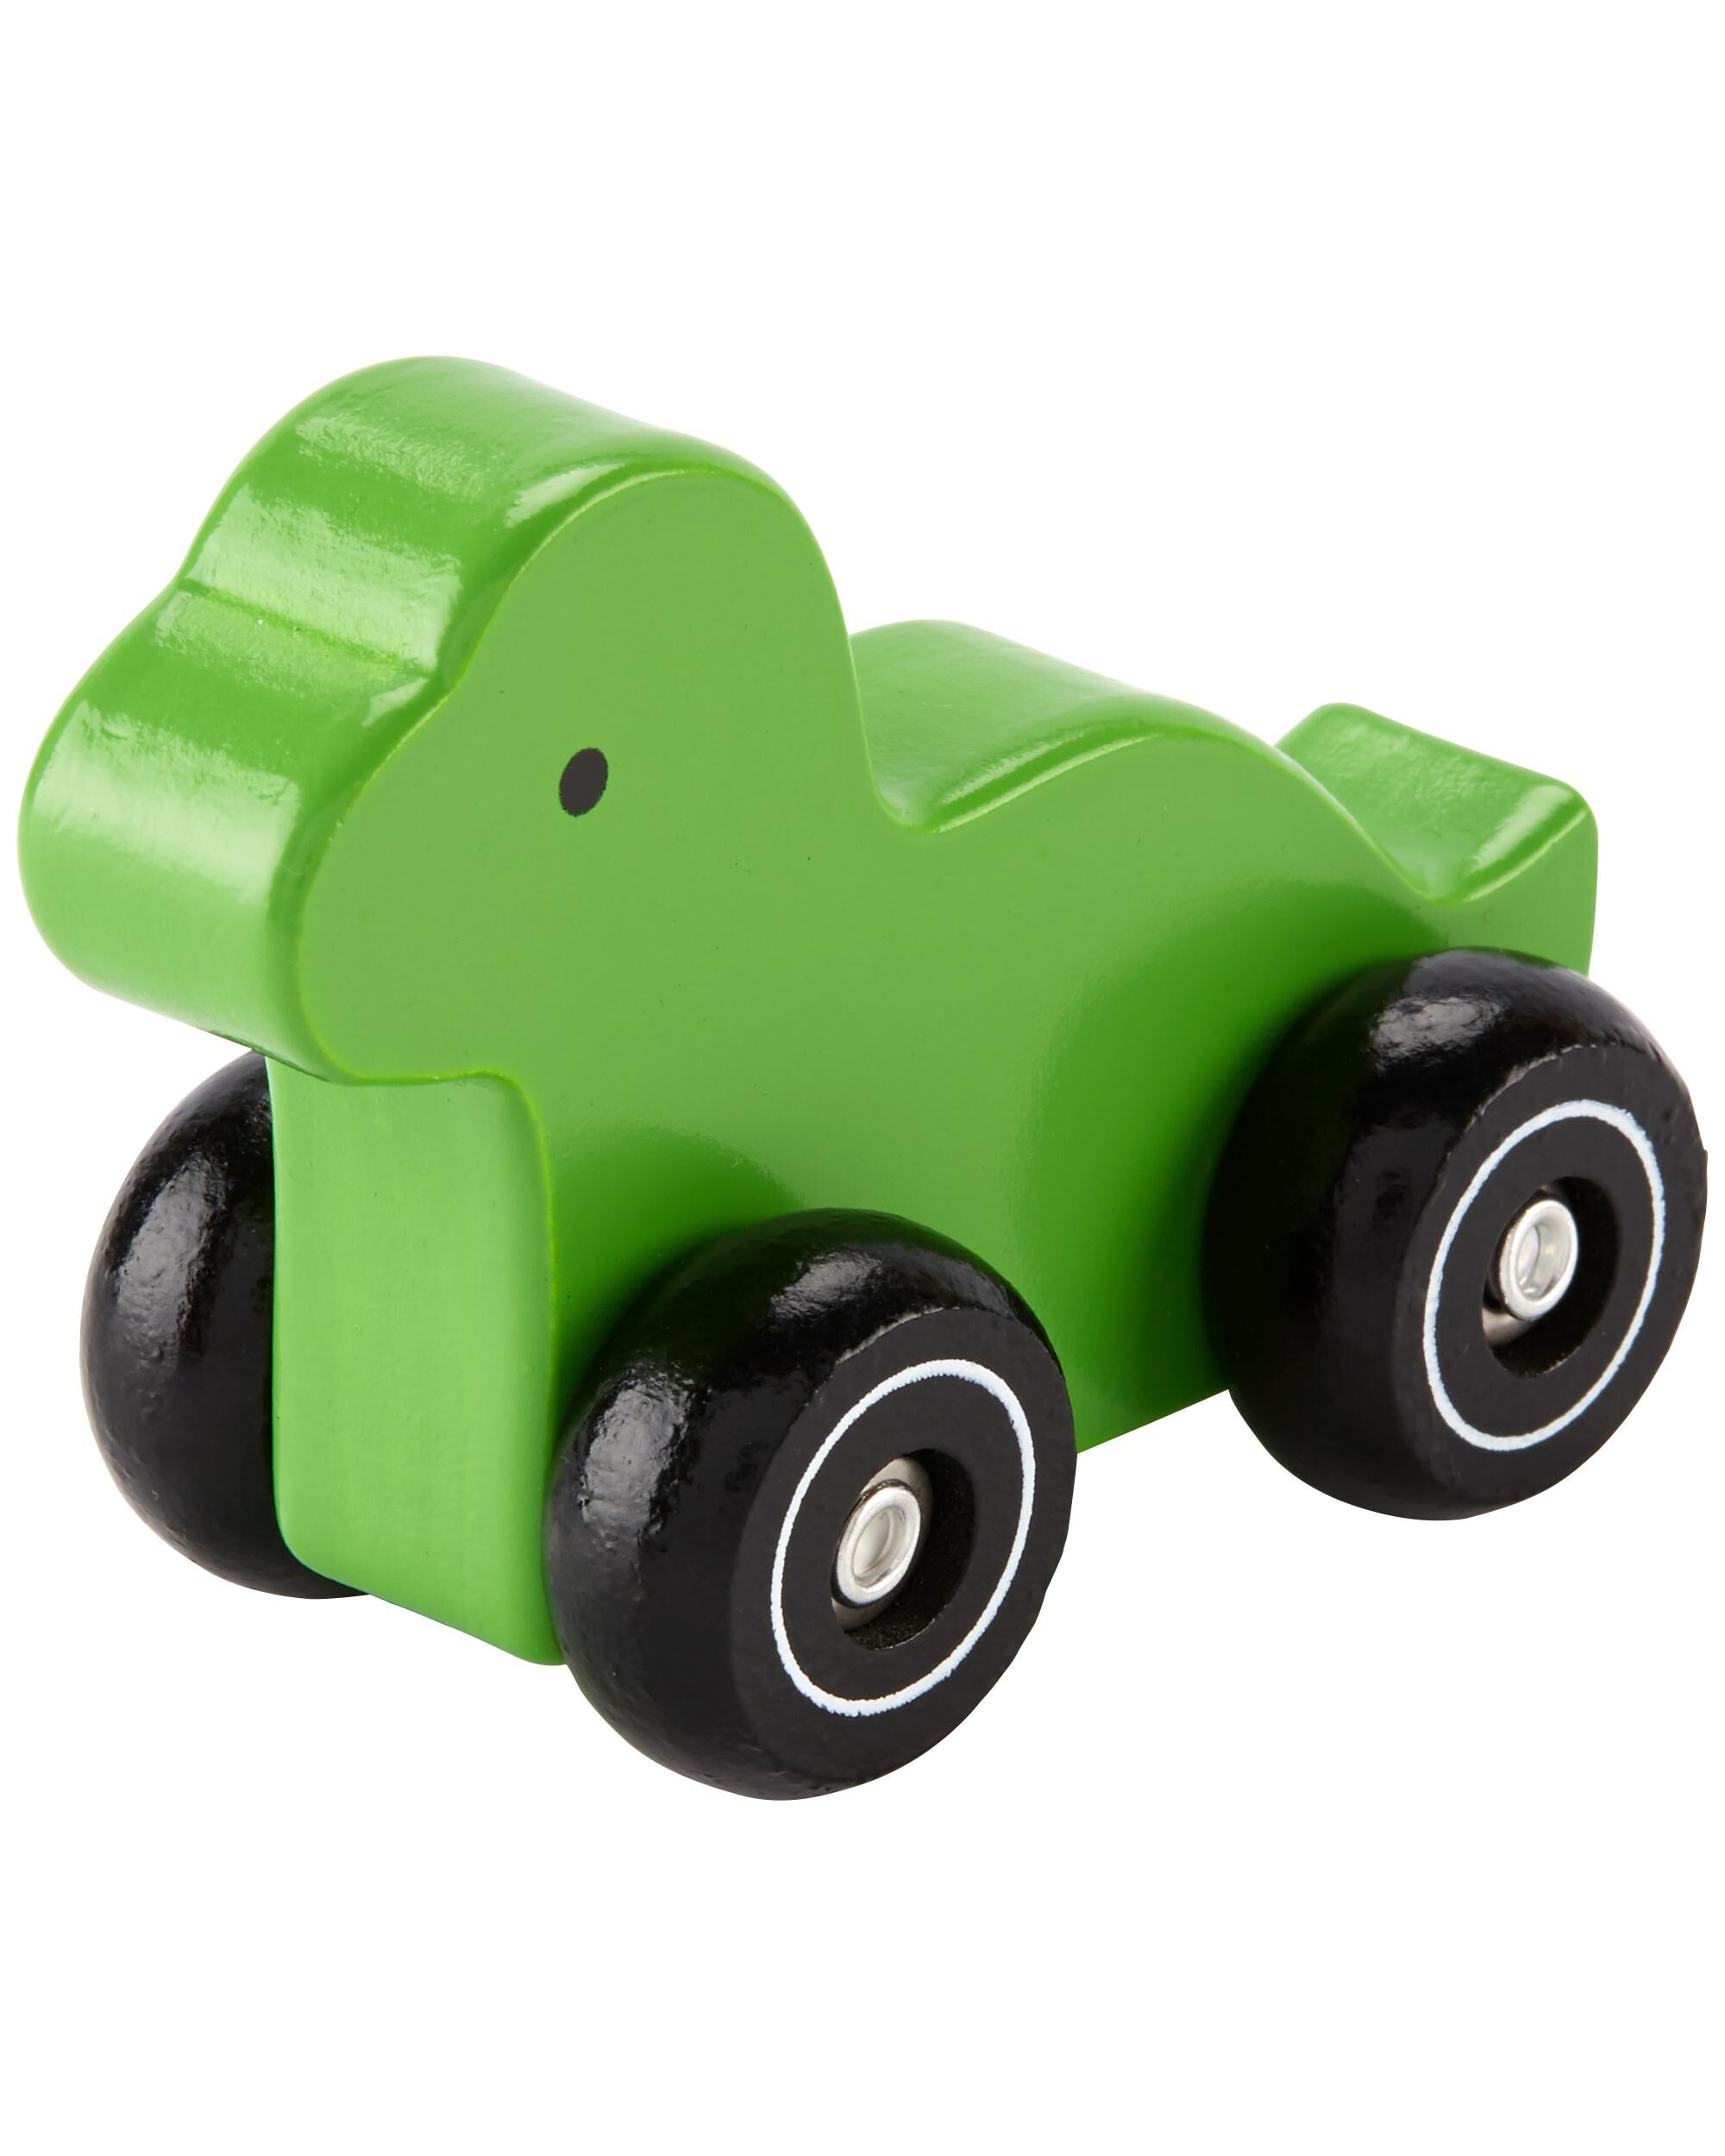 Oshkoshbgosh Dinosaur Wooden Car